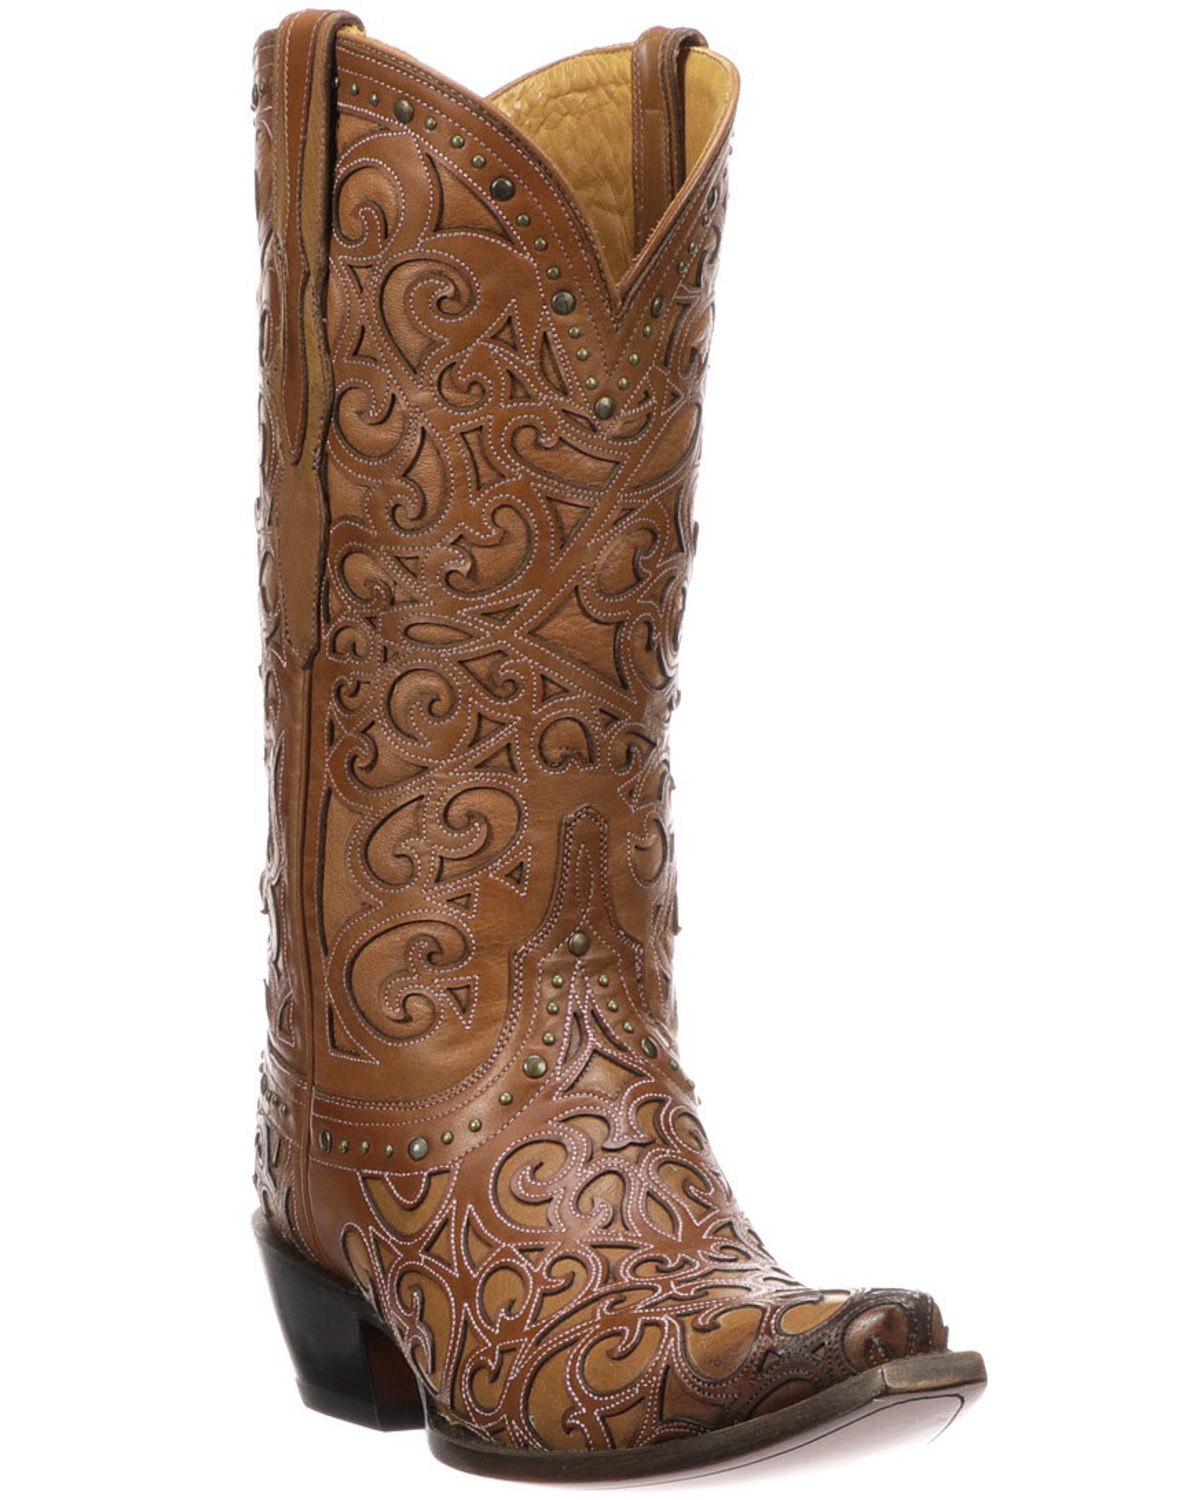 Popular Online Cheap Winter / Autumn Lucchese Robyn Ankle Boots In Tan Printed Women Boots Online Store